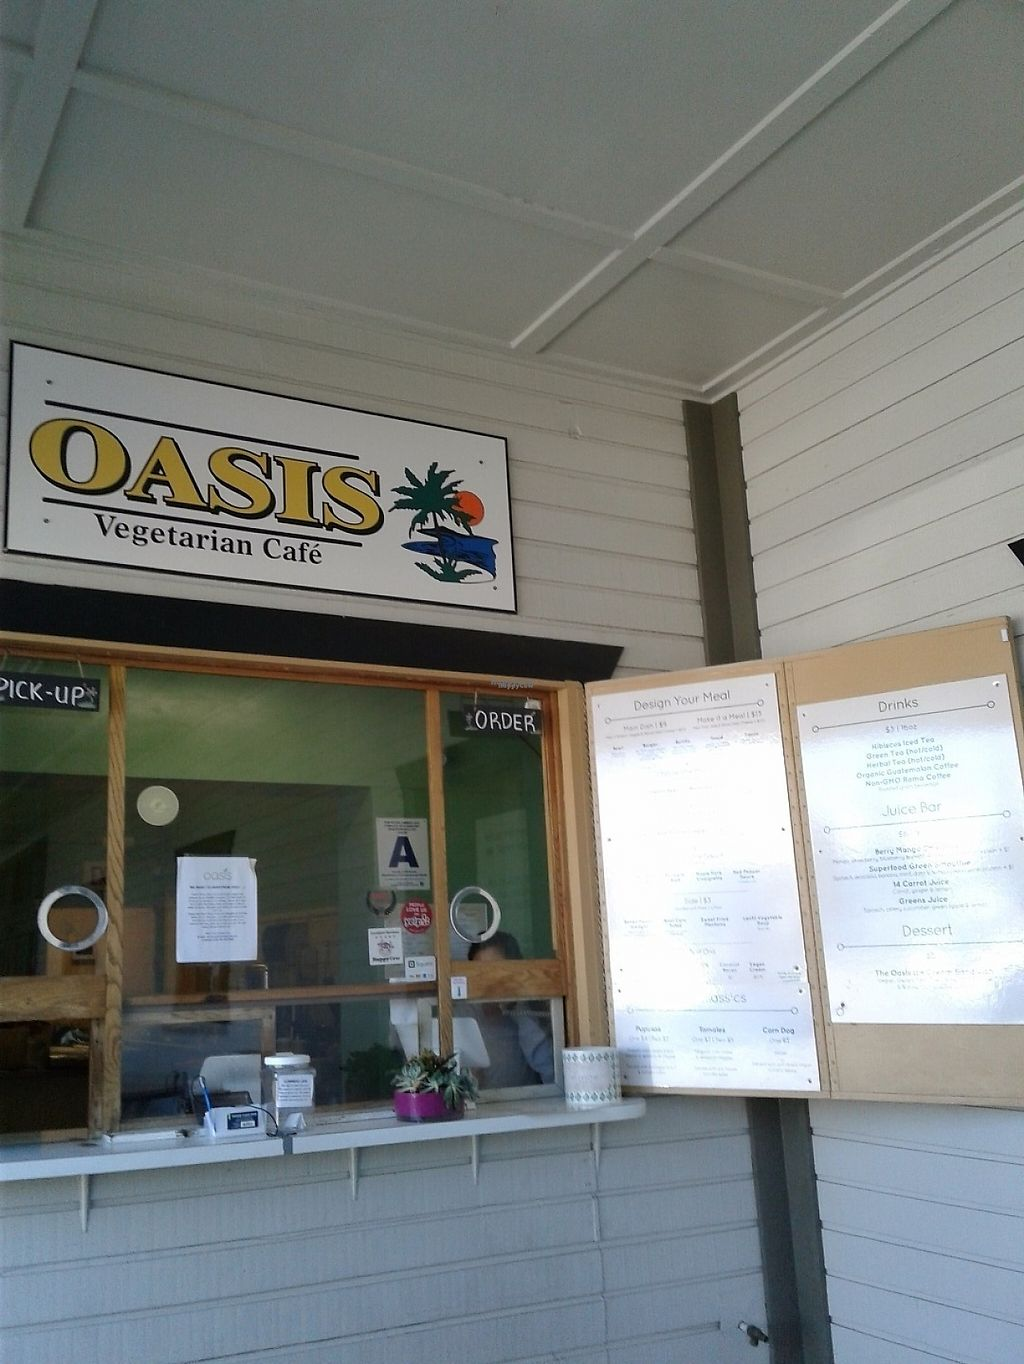 "Photo of Oasis Vegetarian Cafe  by <a href=""/members/profile/anastronomy"">anastronomy</a> <br/>Tasty vegan food <br/> March 28, 2017  - <a href='/contact/abuse/image/8716/242151'>Report</a>"